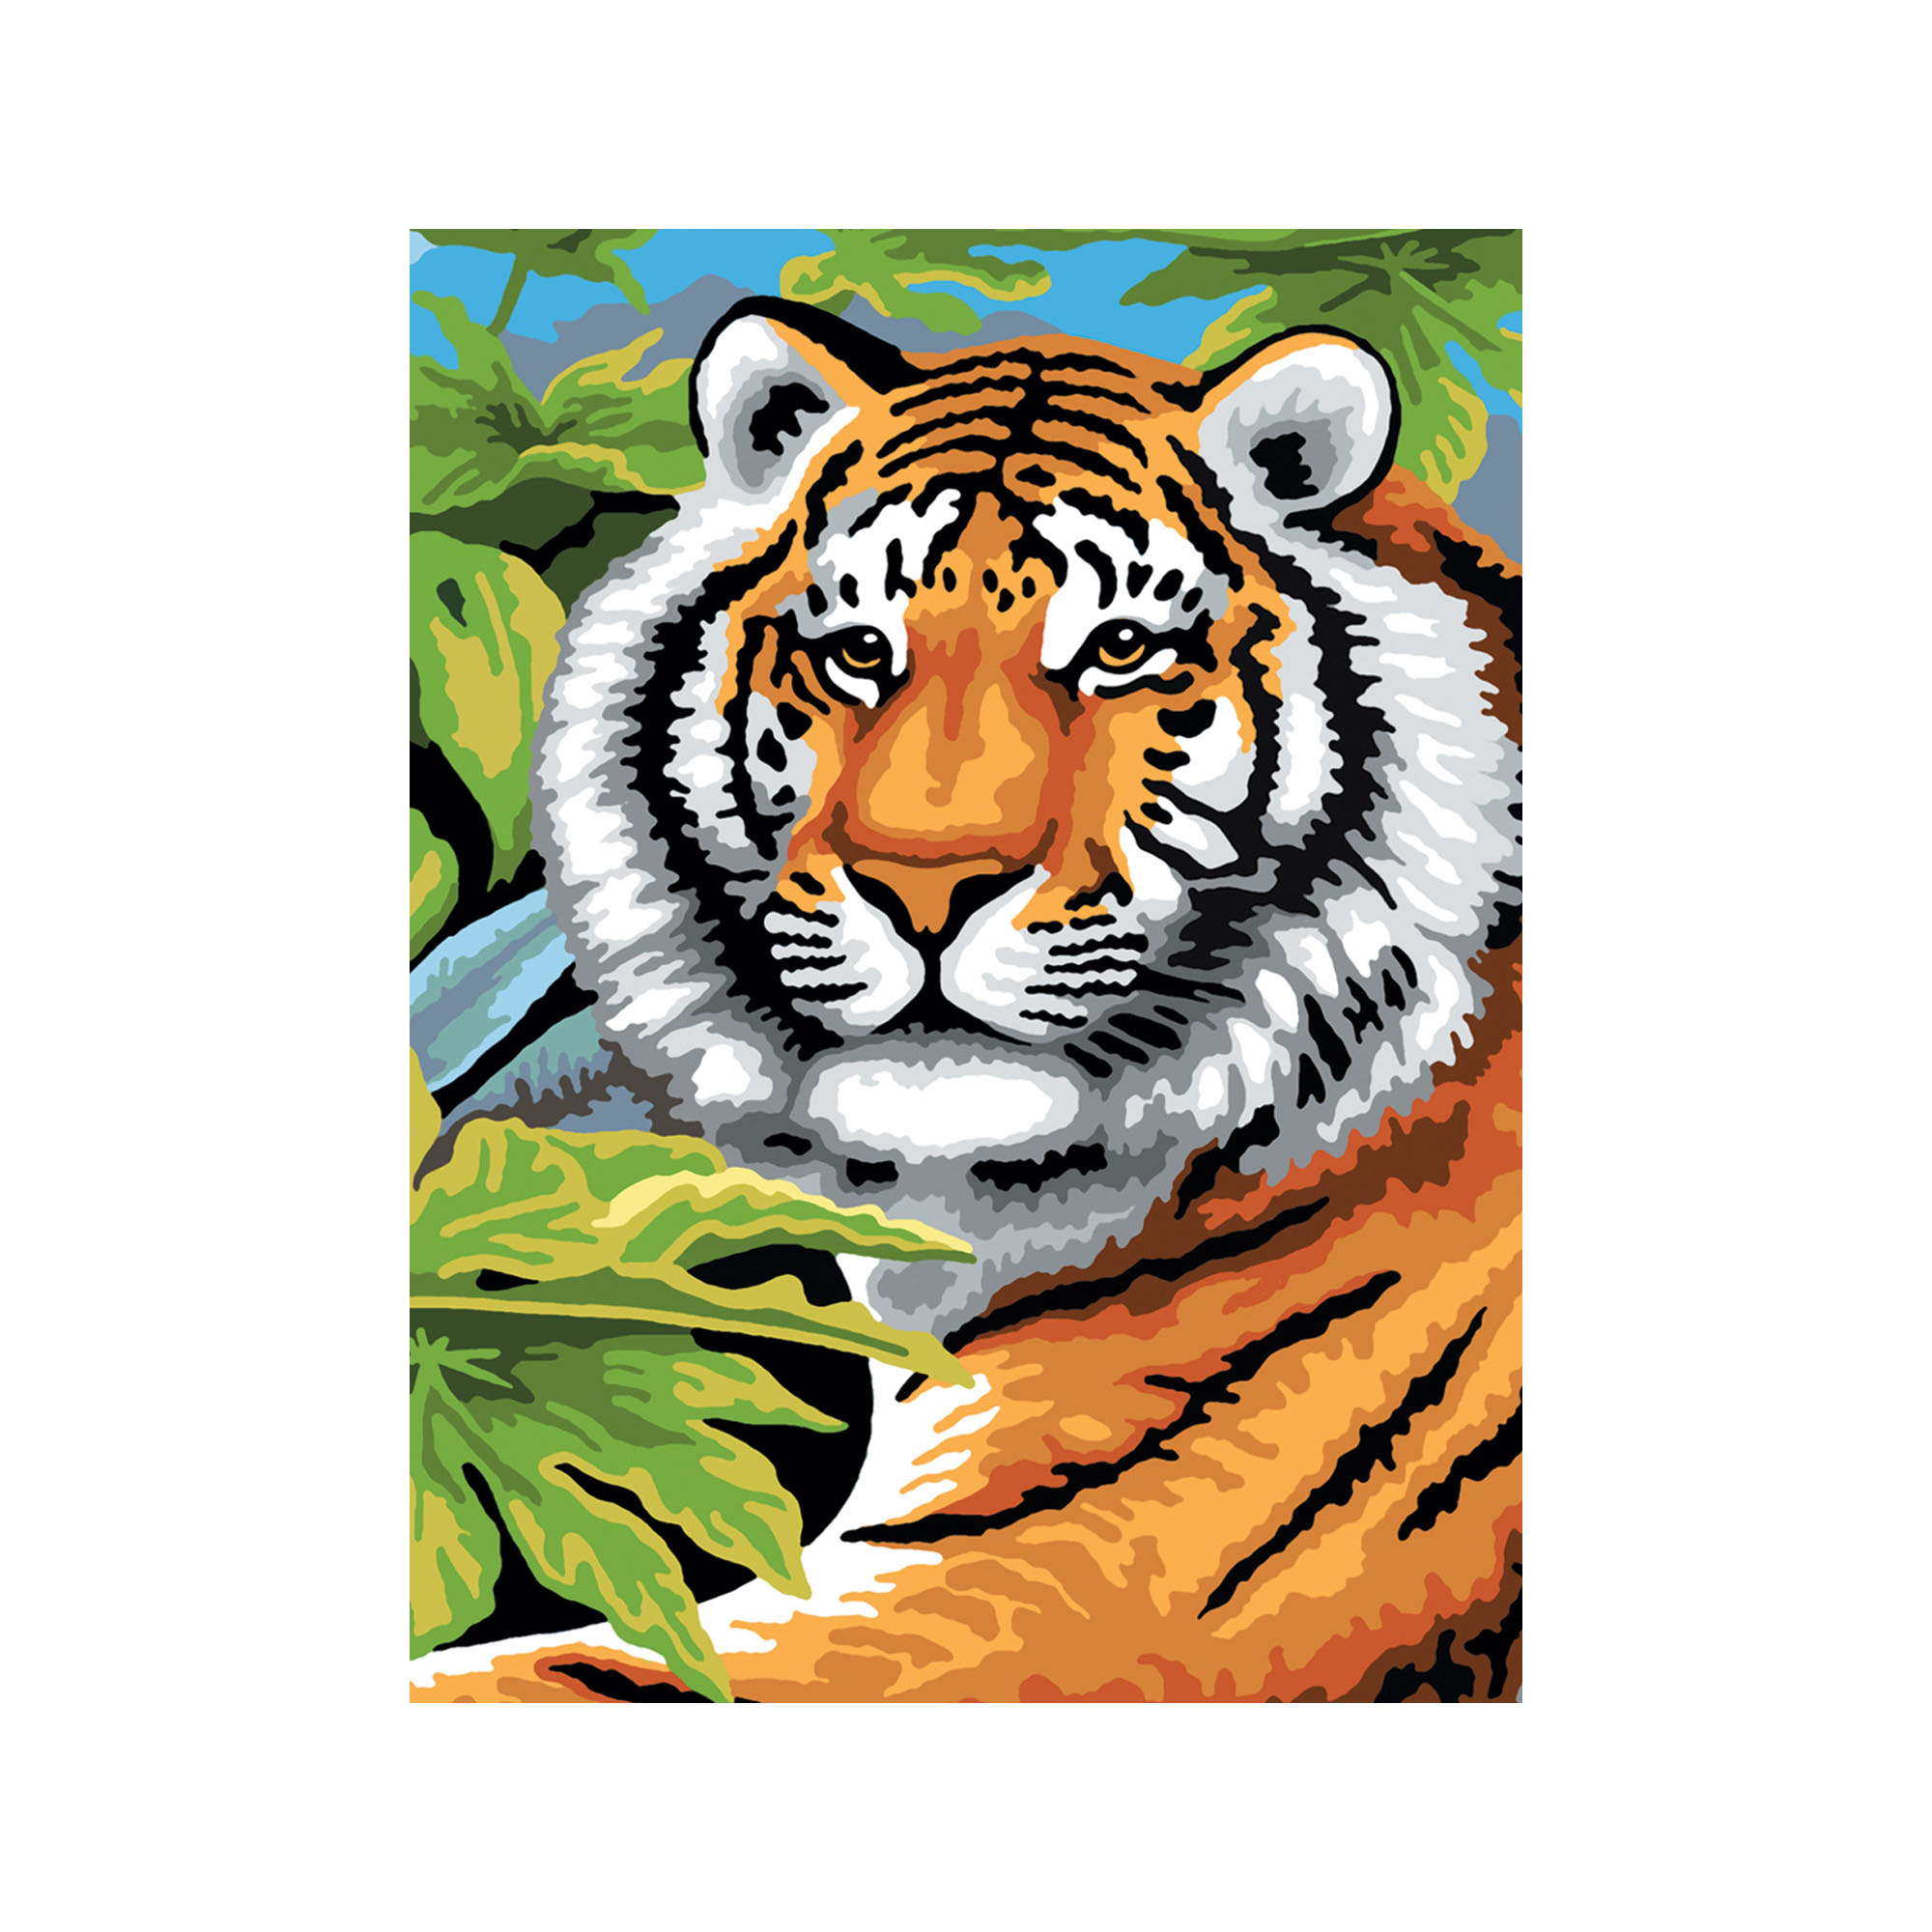 Big cats paint by numbers kit